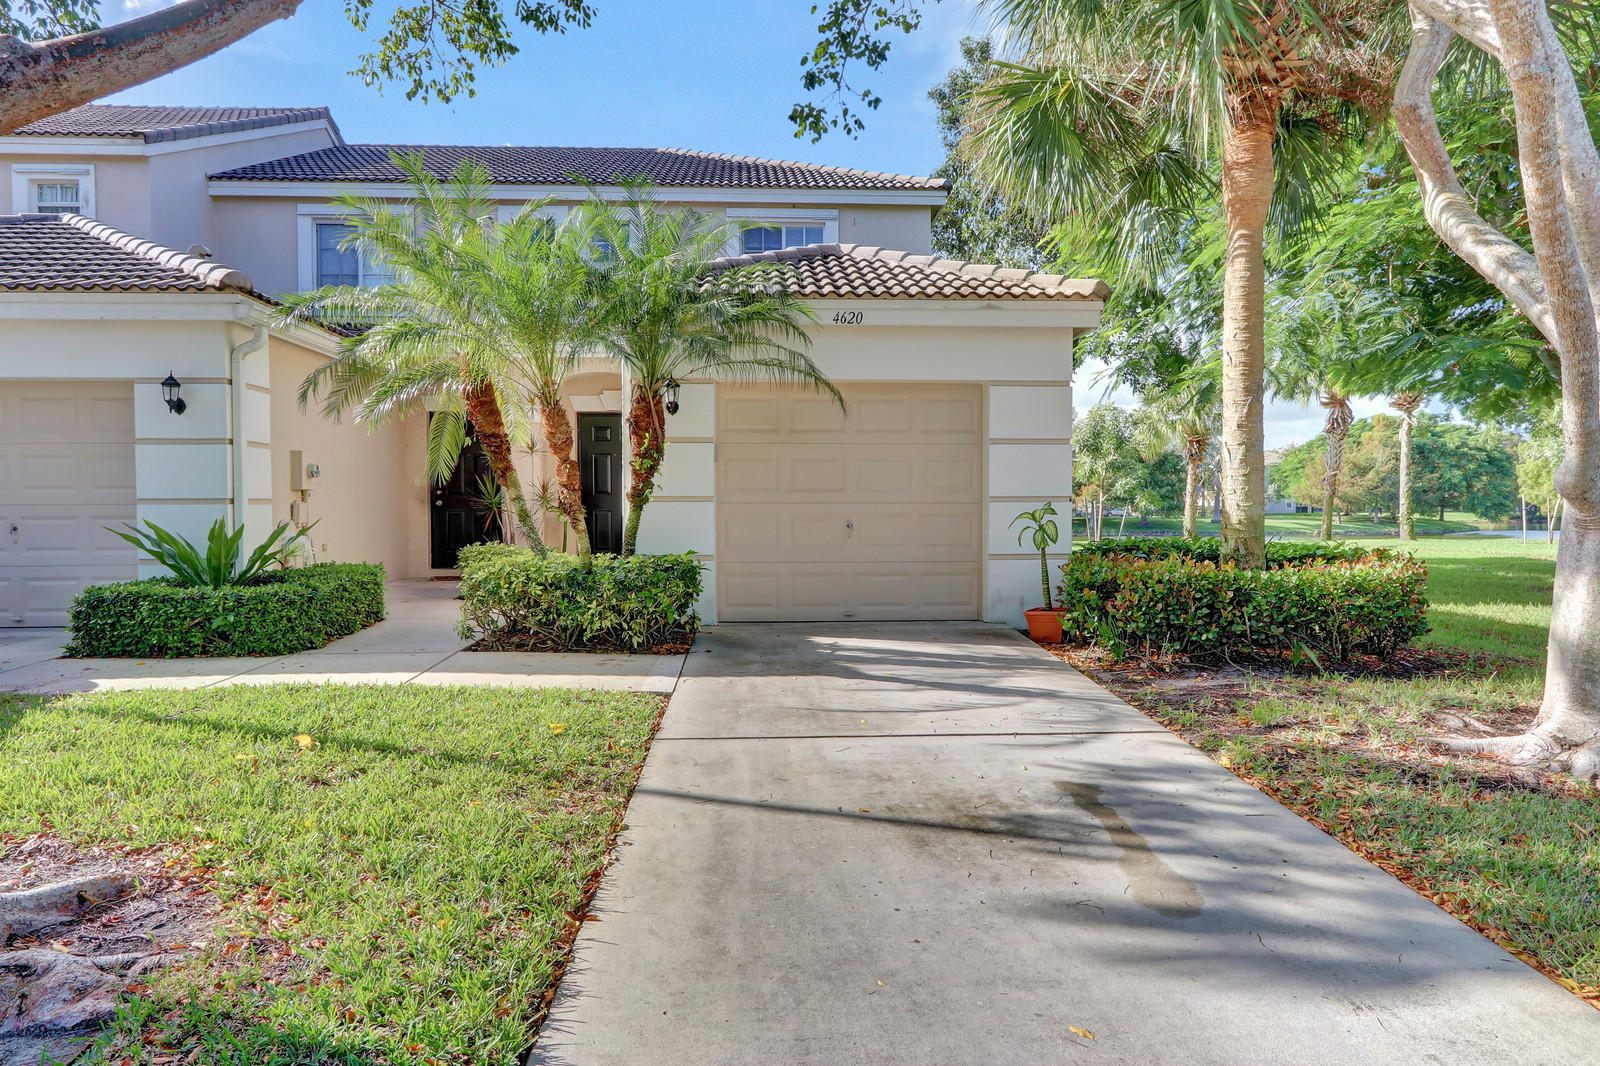 Photo of home for sale at 4620 Palmbrooke Circle, West Palm Beach FL